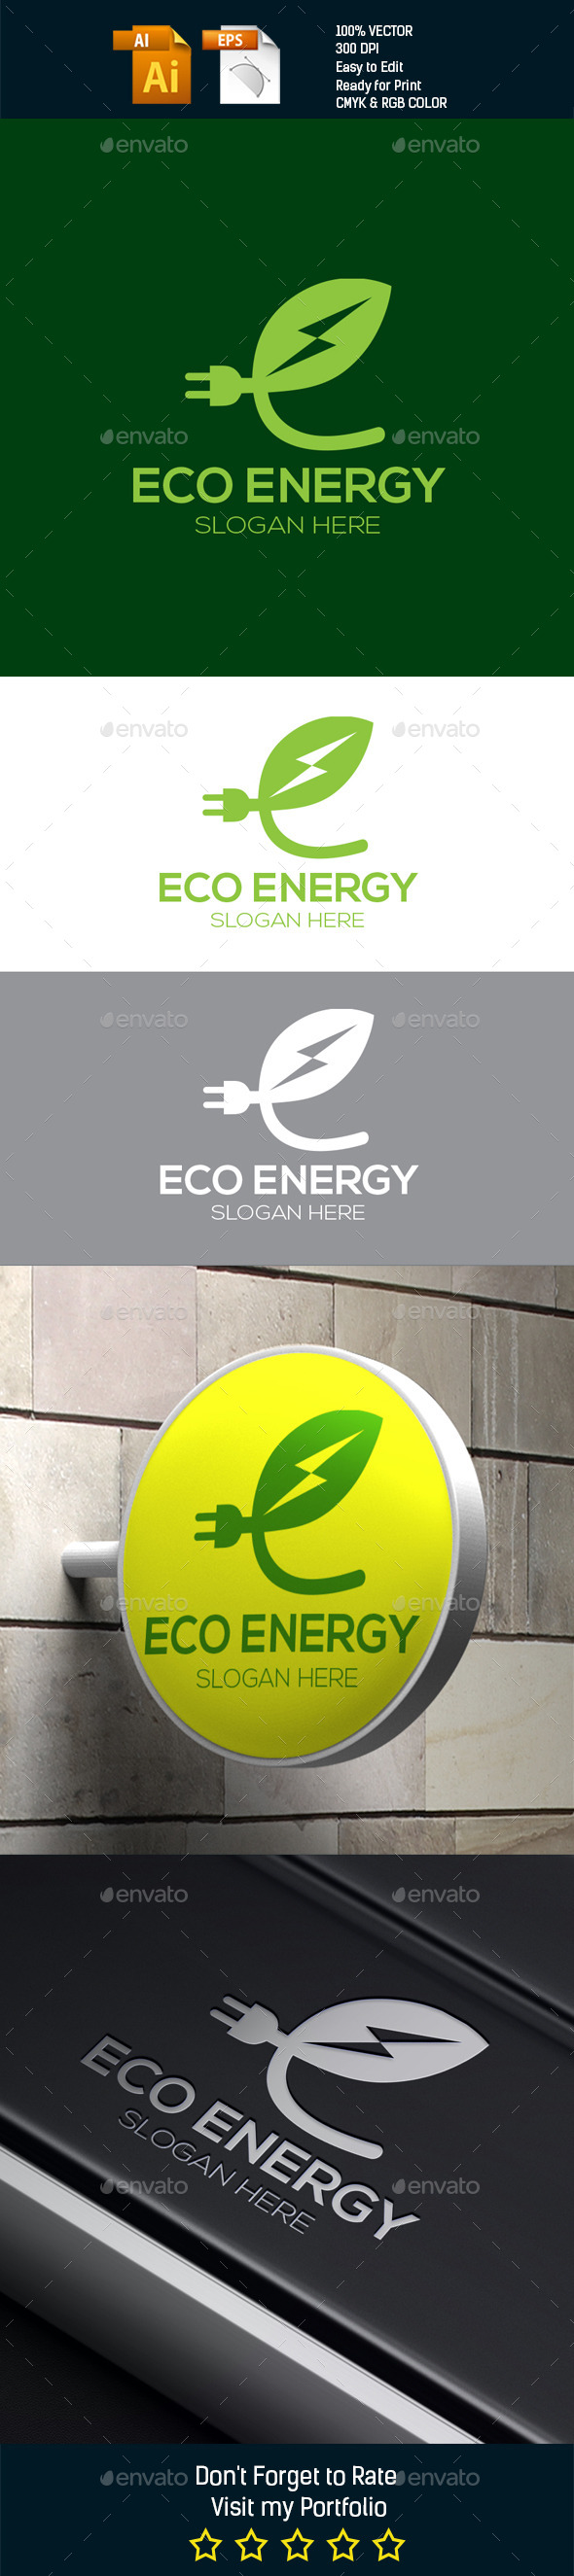 Eco Energy - Nature Logo Templates